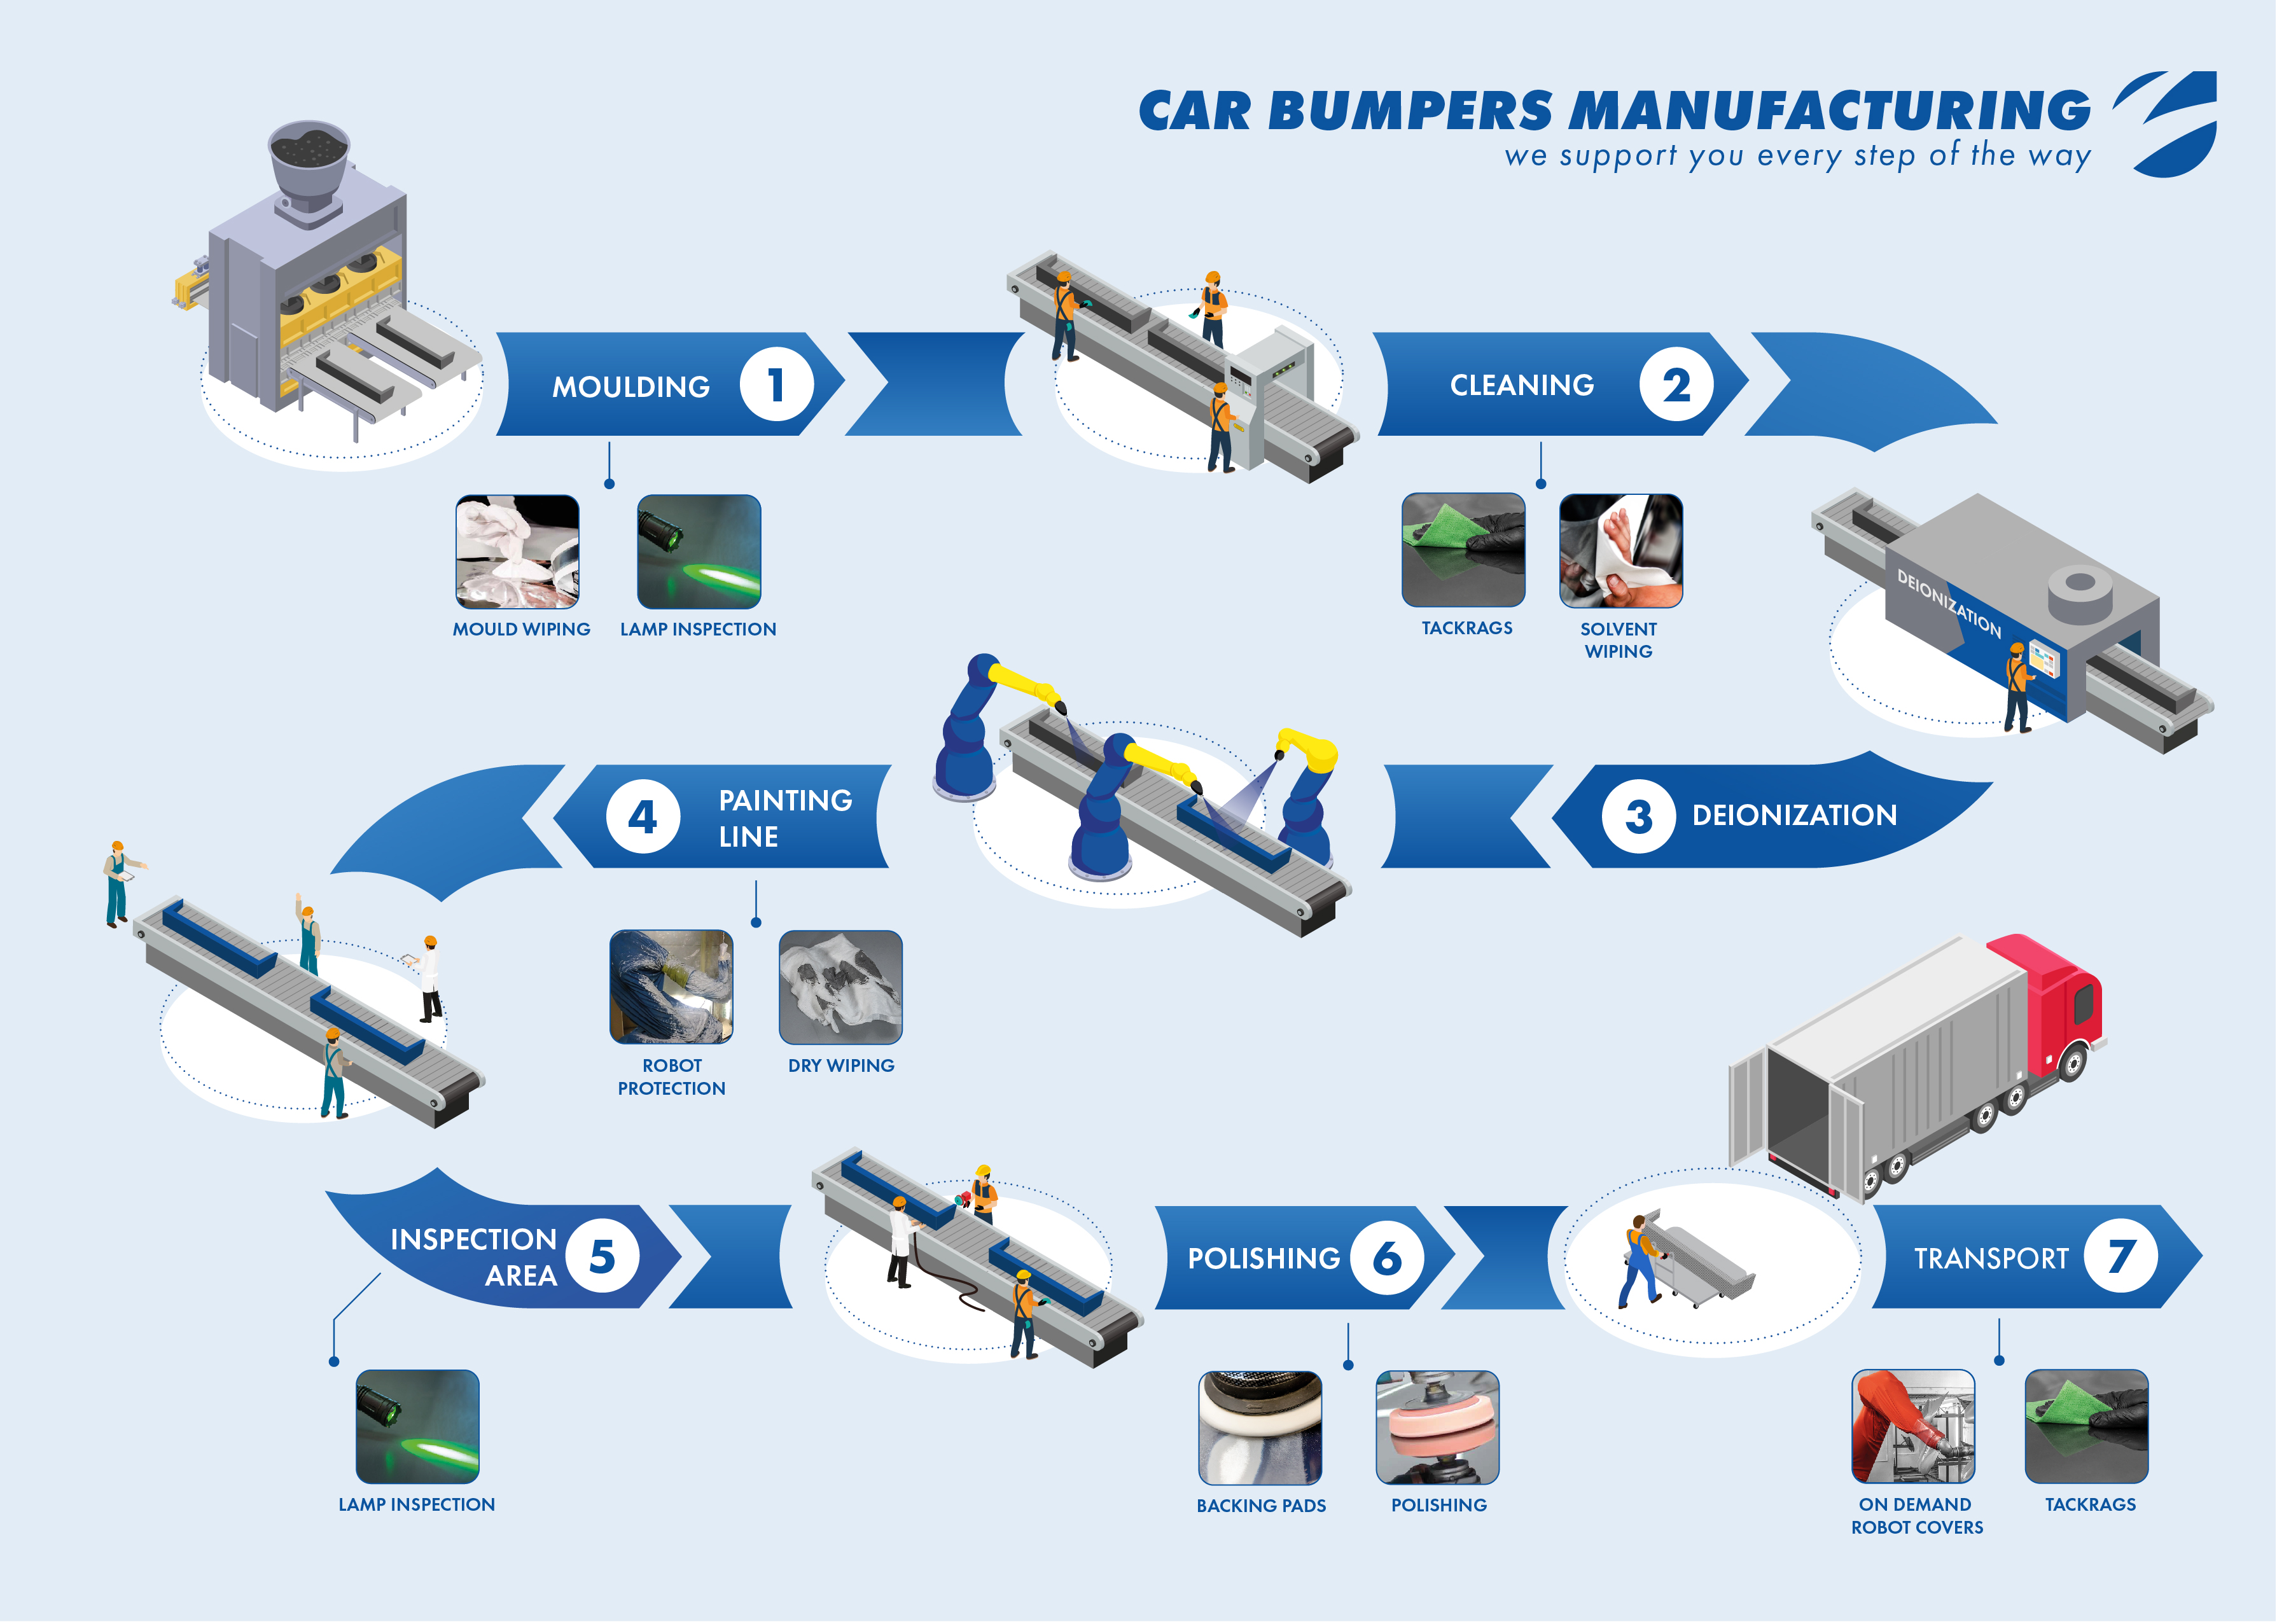 carbumpers_manufacturing_digital.jpg